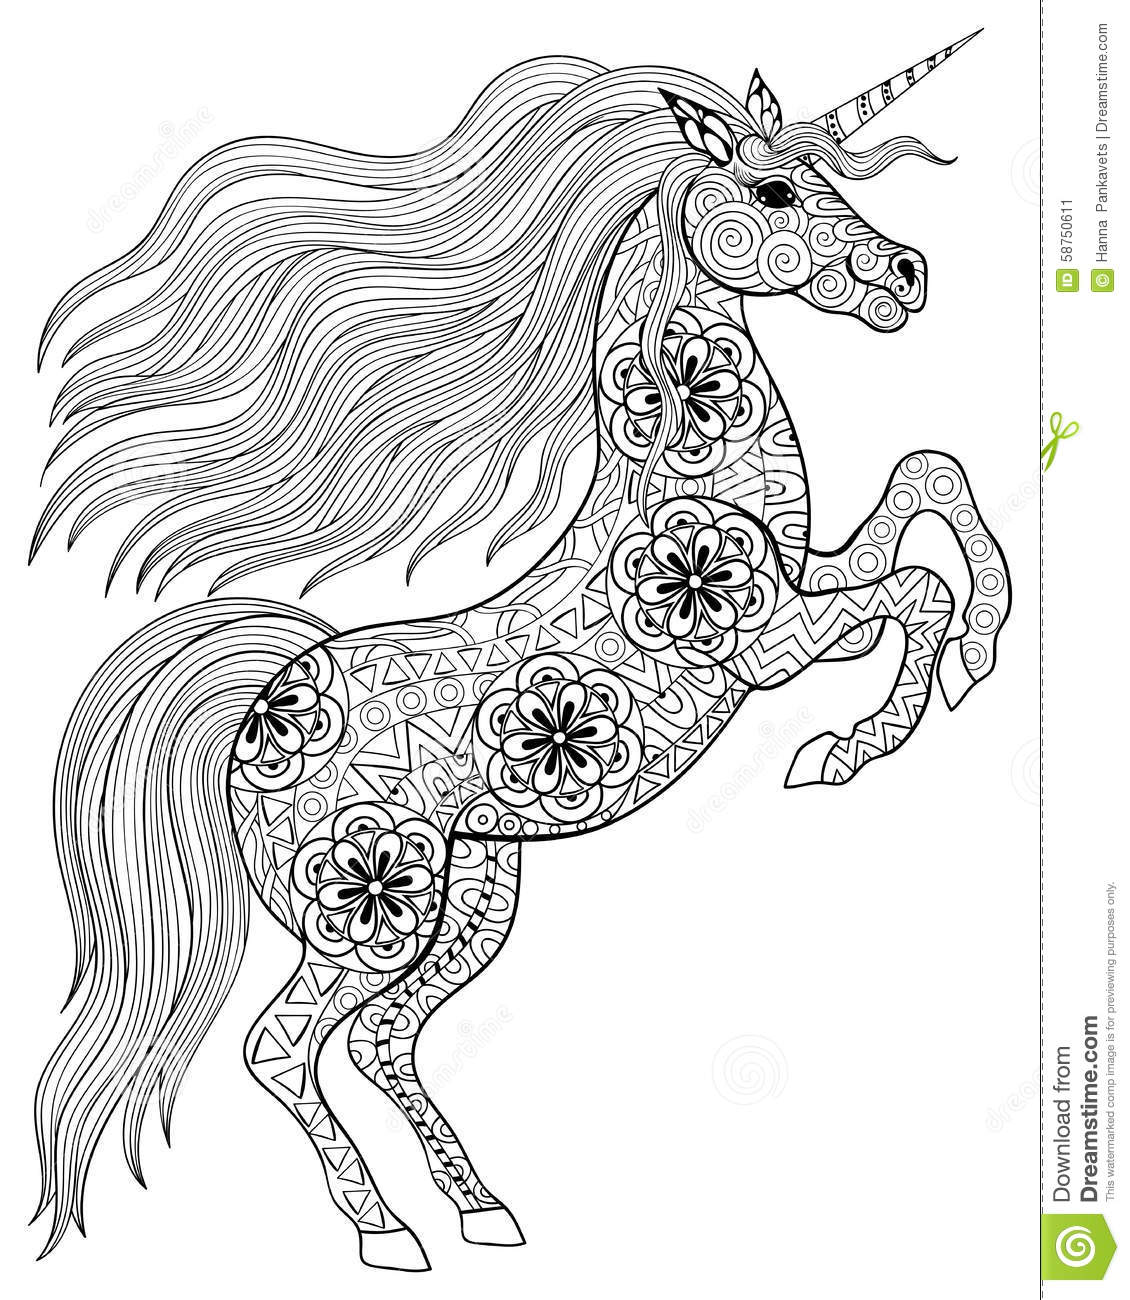 Hand drawn magic unicorn for adult anti stress coloring page with high details isolated on white background illustration in zentangle style